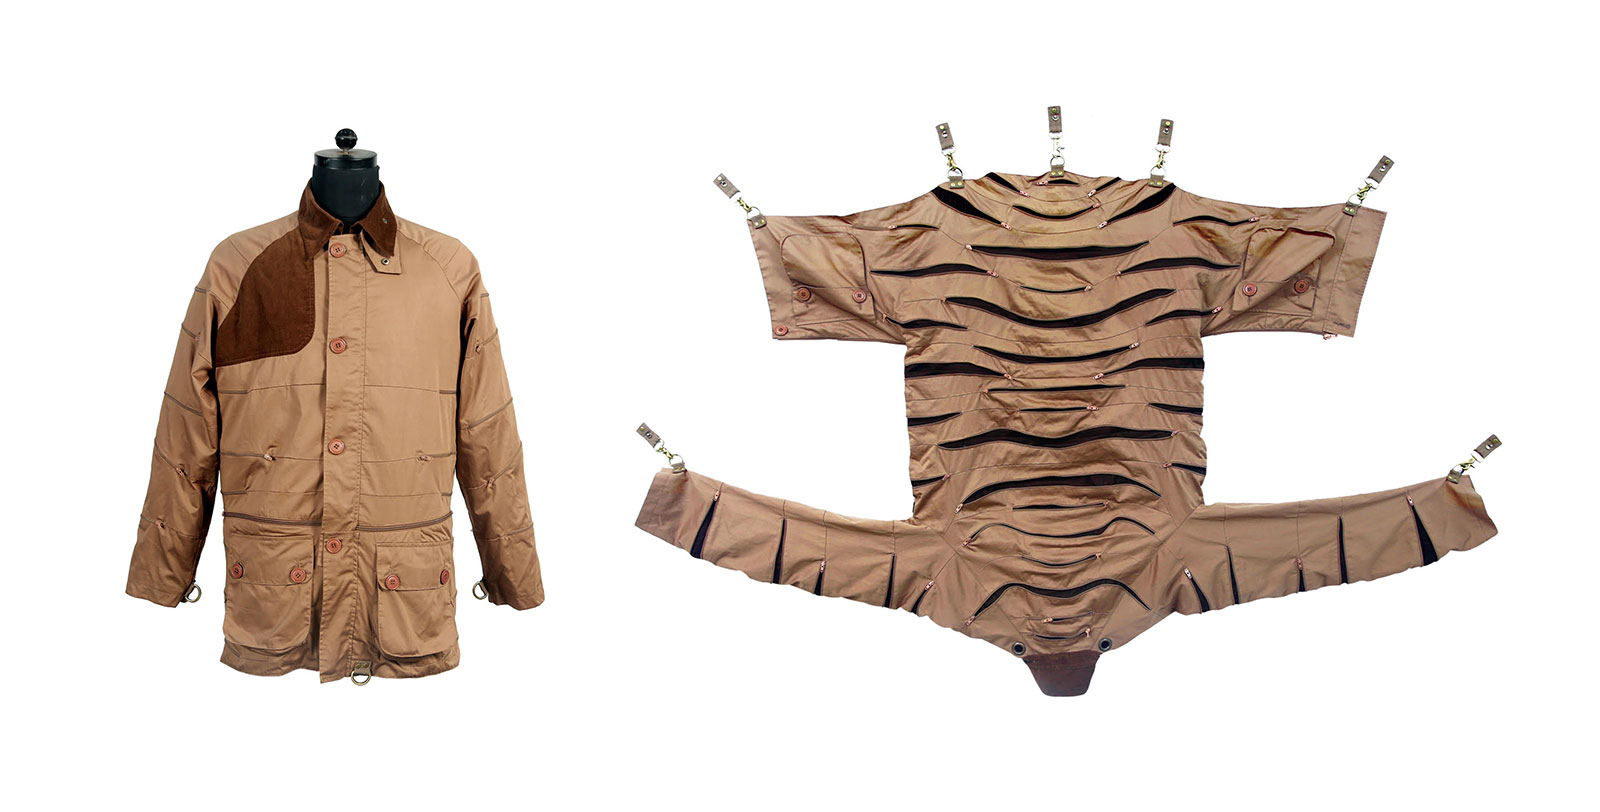 safari jacket that folds into the form of a tiger skin